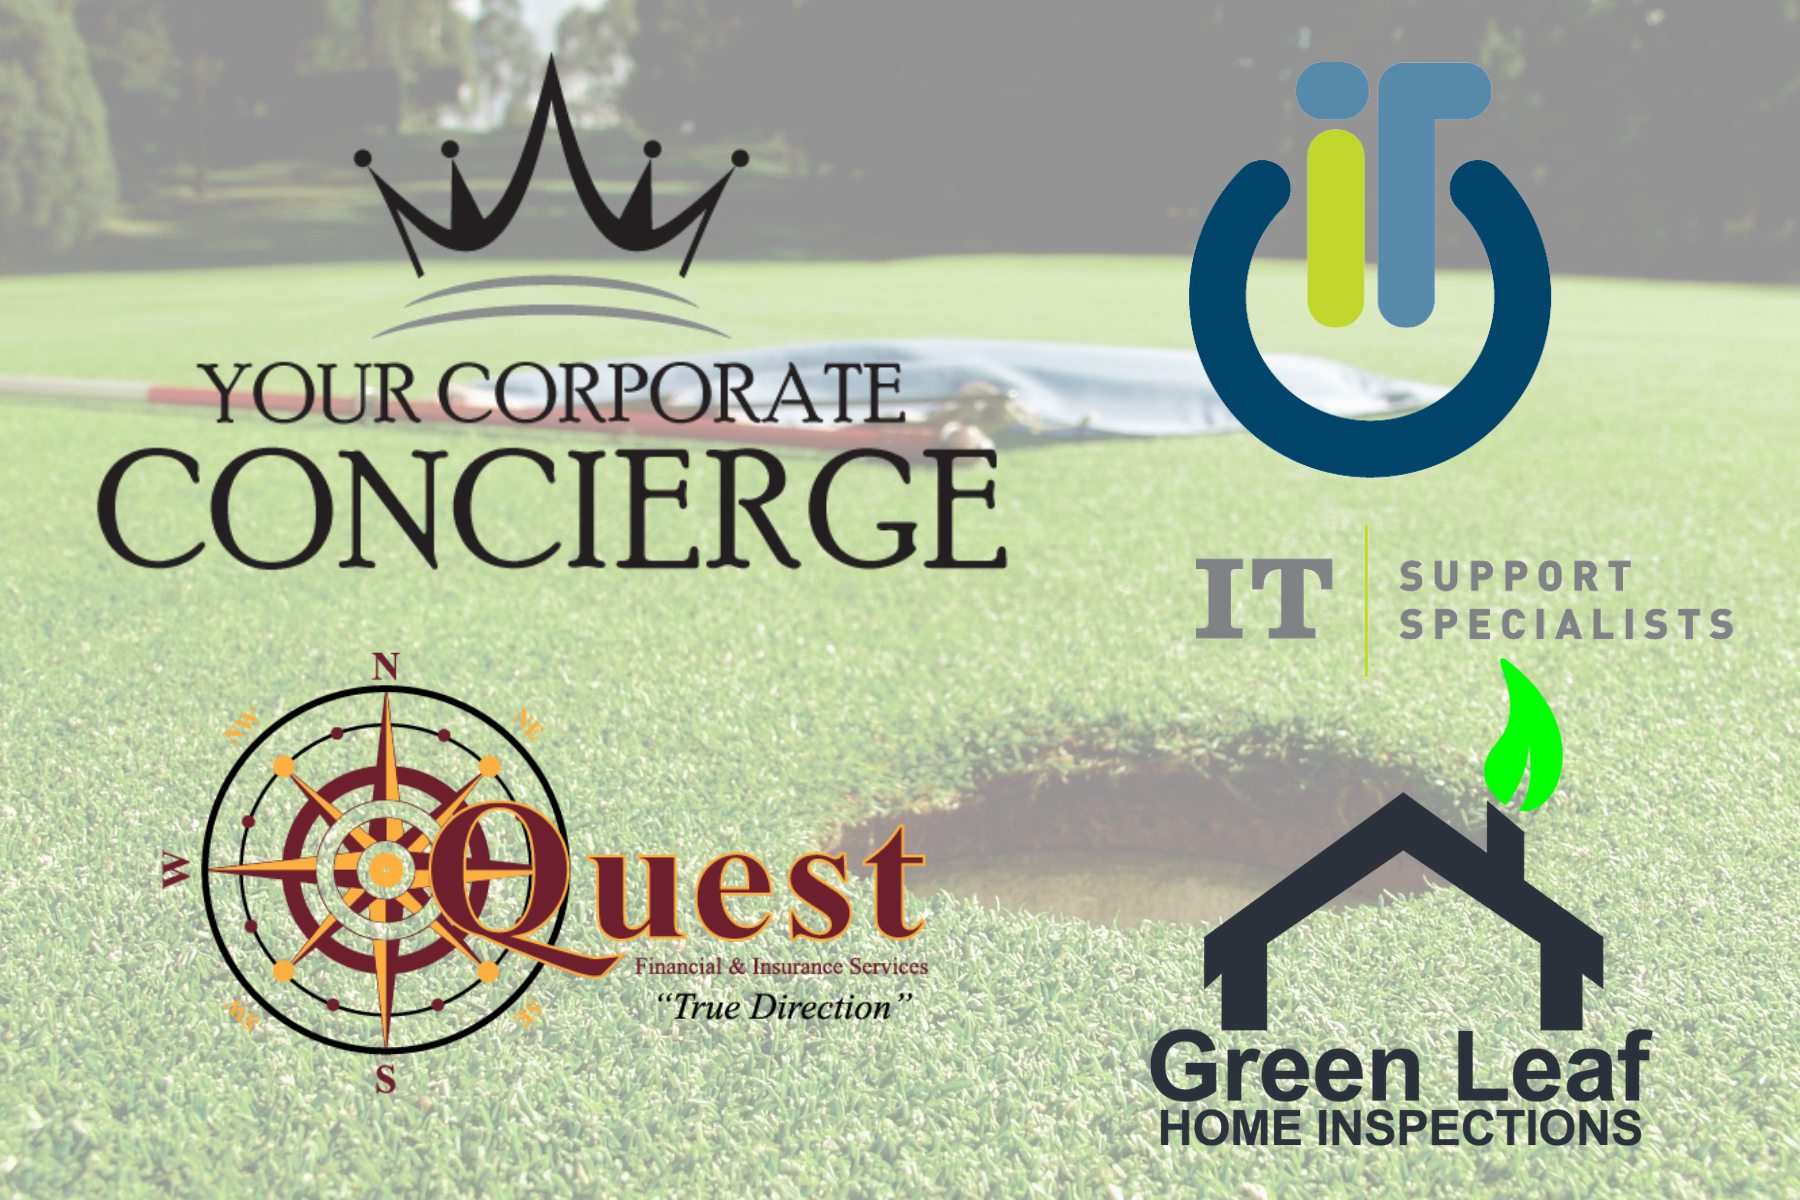 It's going to be a great summer representing IT Support Specialists, Quest Financial & Insurance Services, and Green Leaf Home Inspections on the golf course!